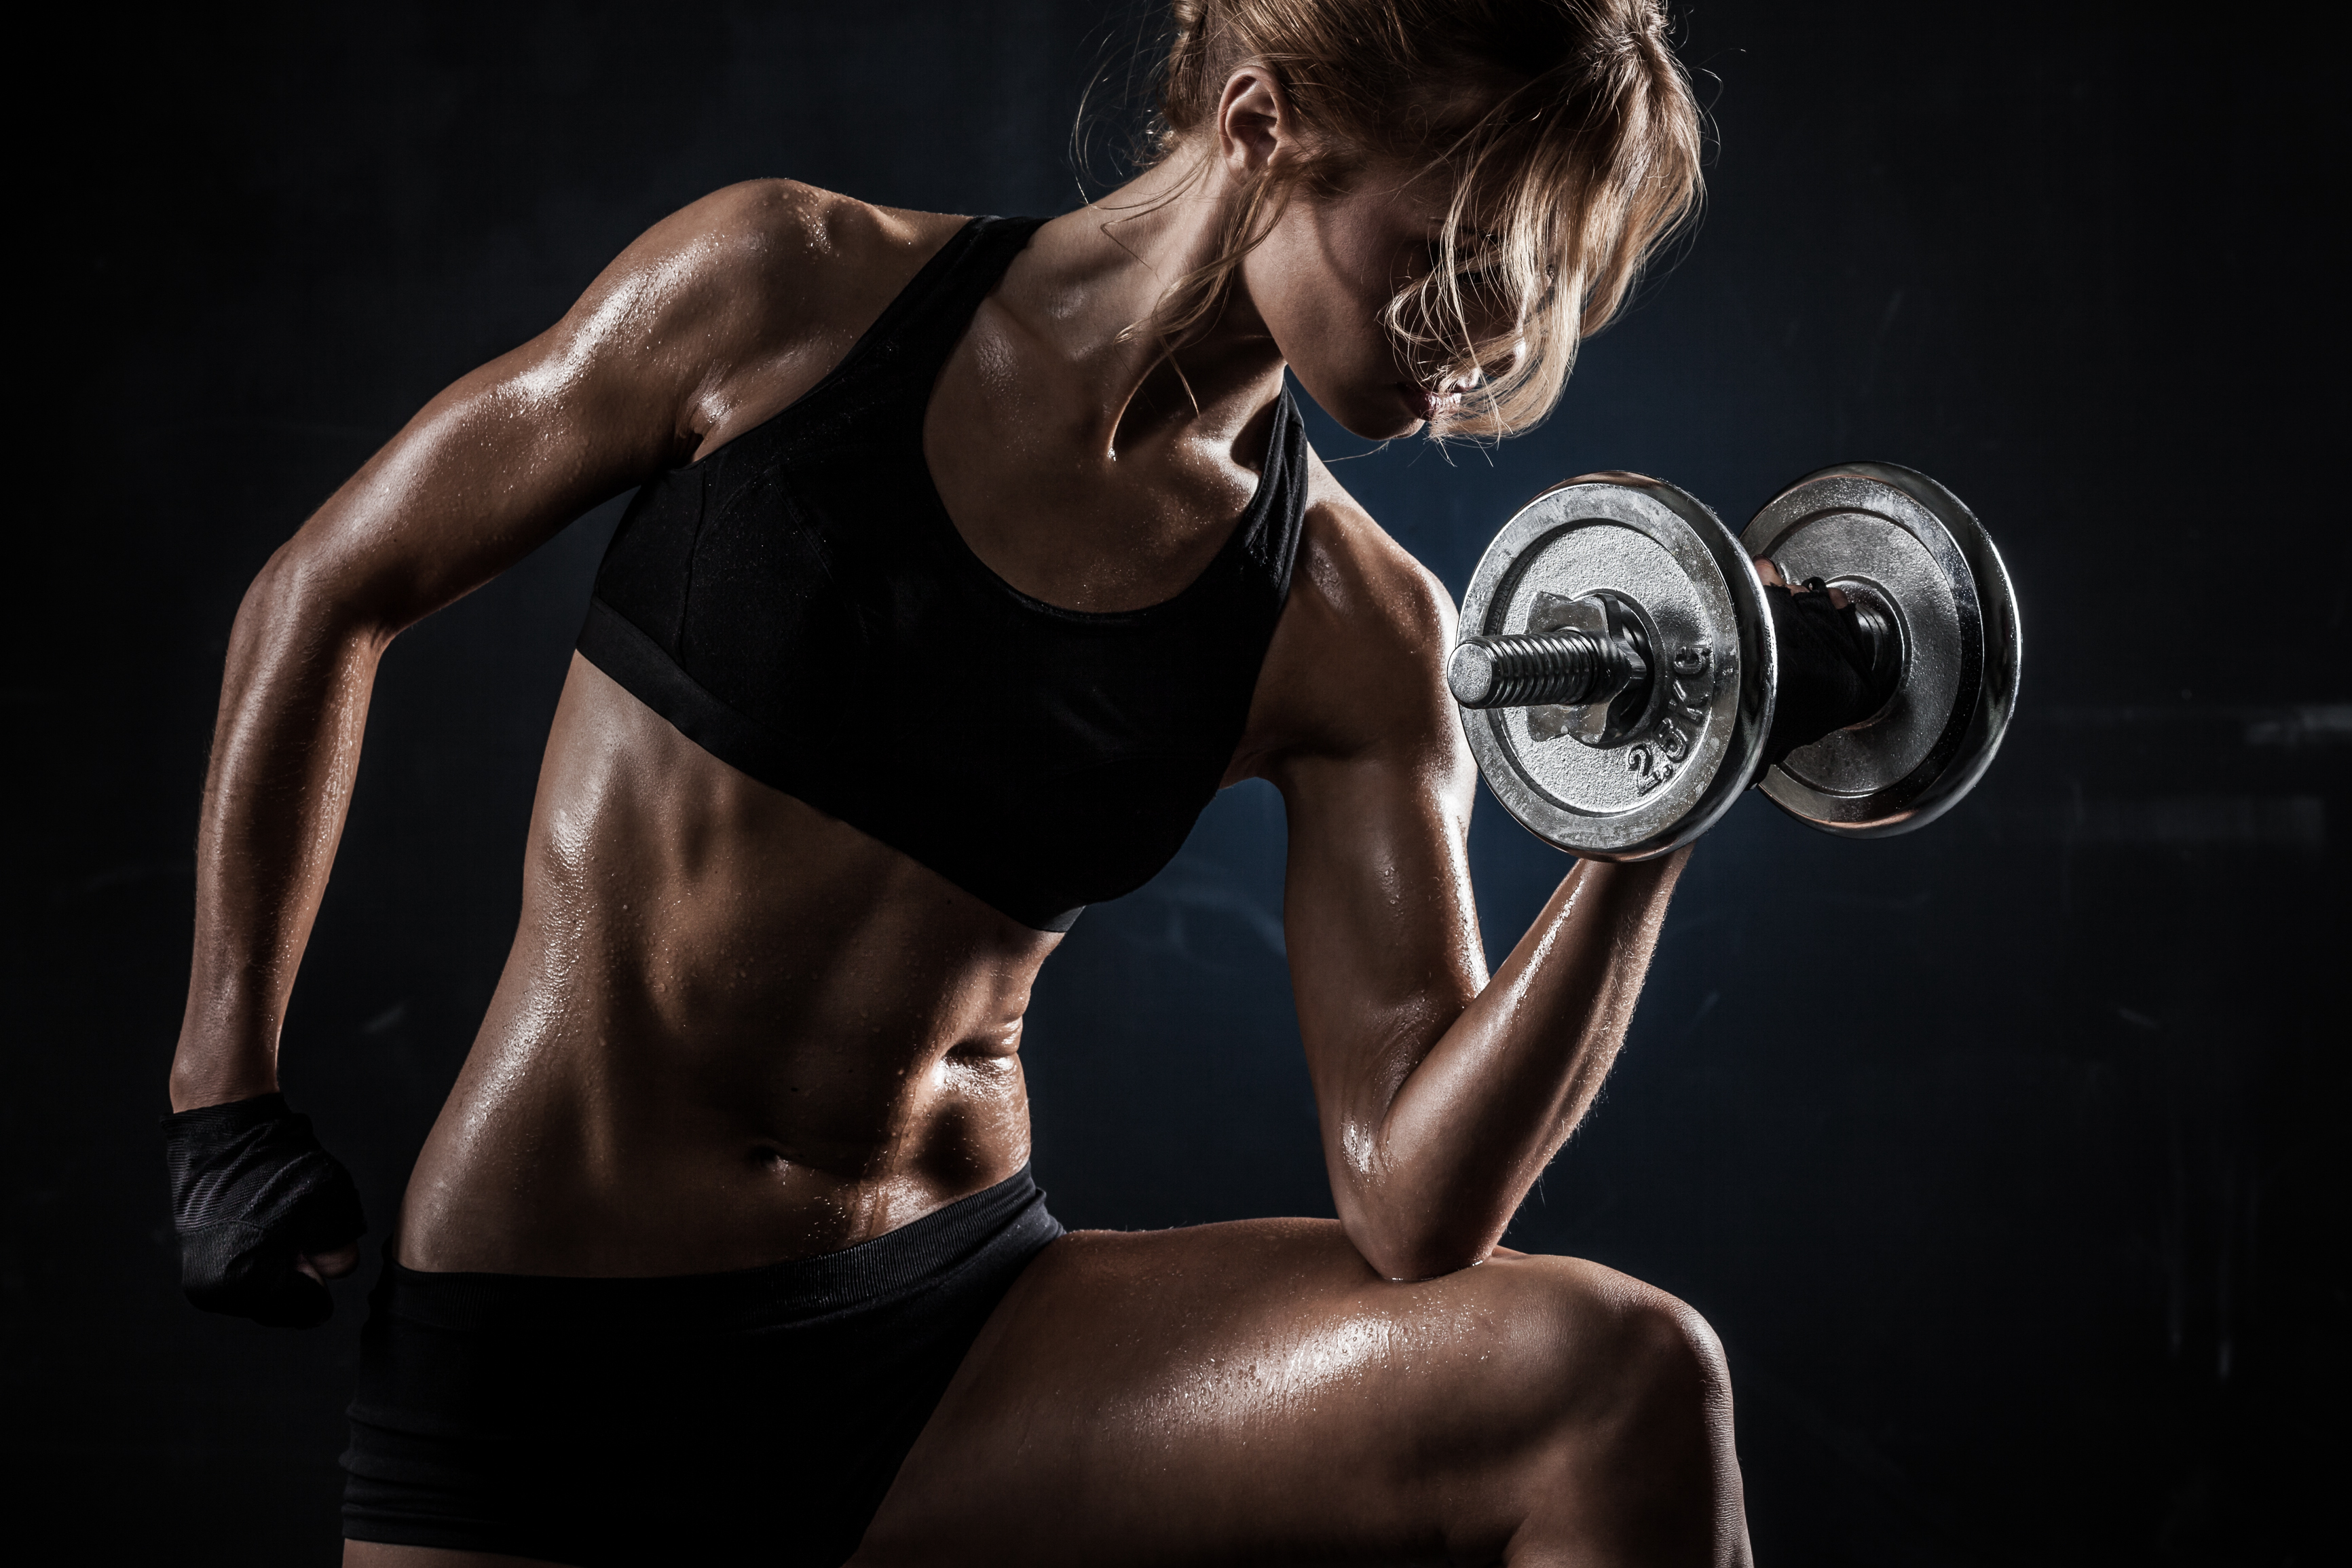 Woman lifting weights with a dumbell